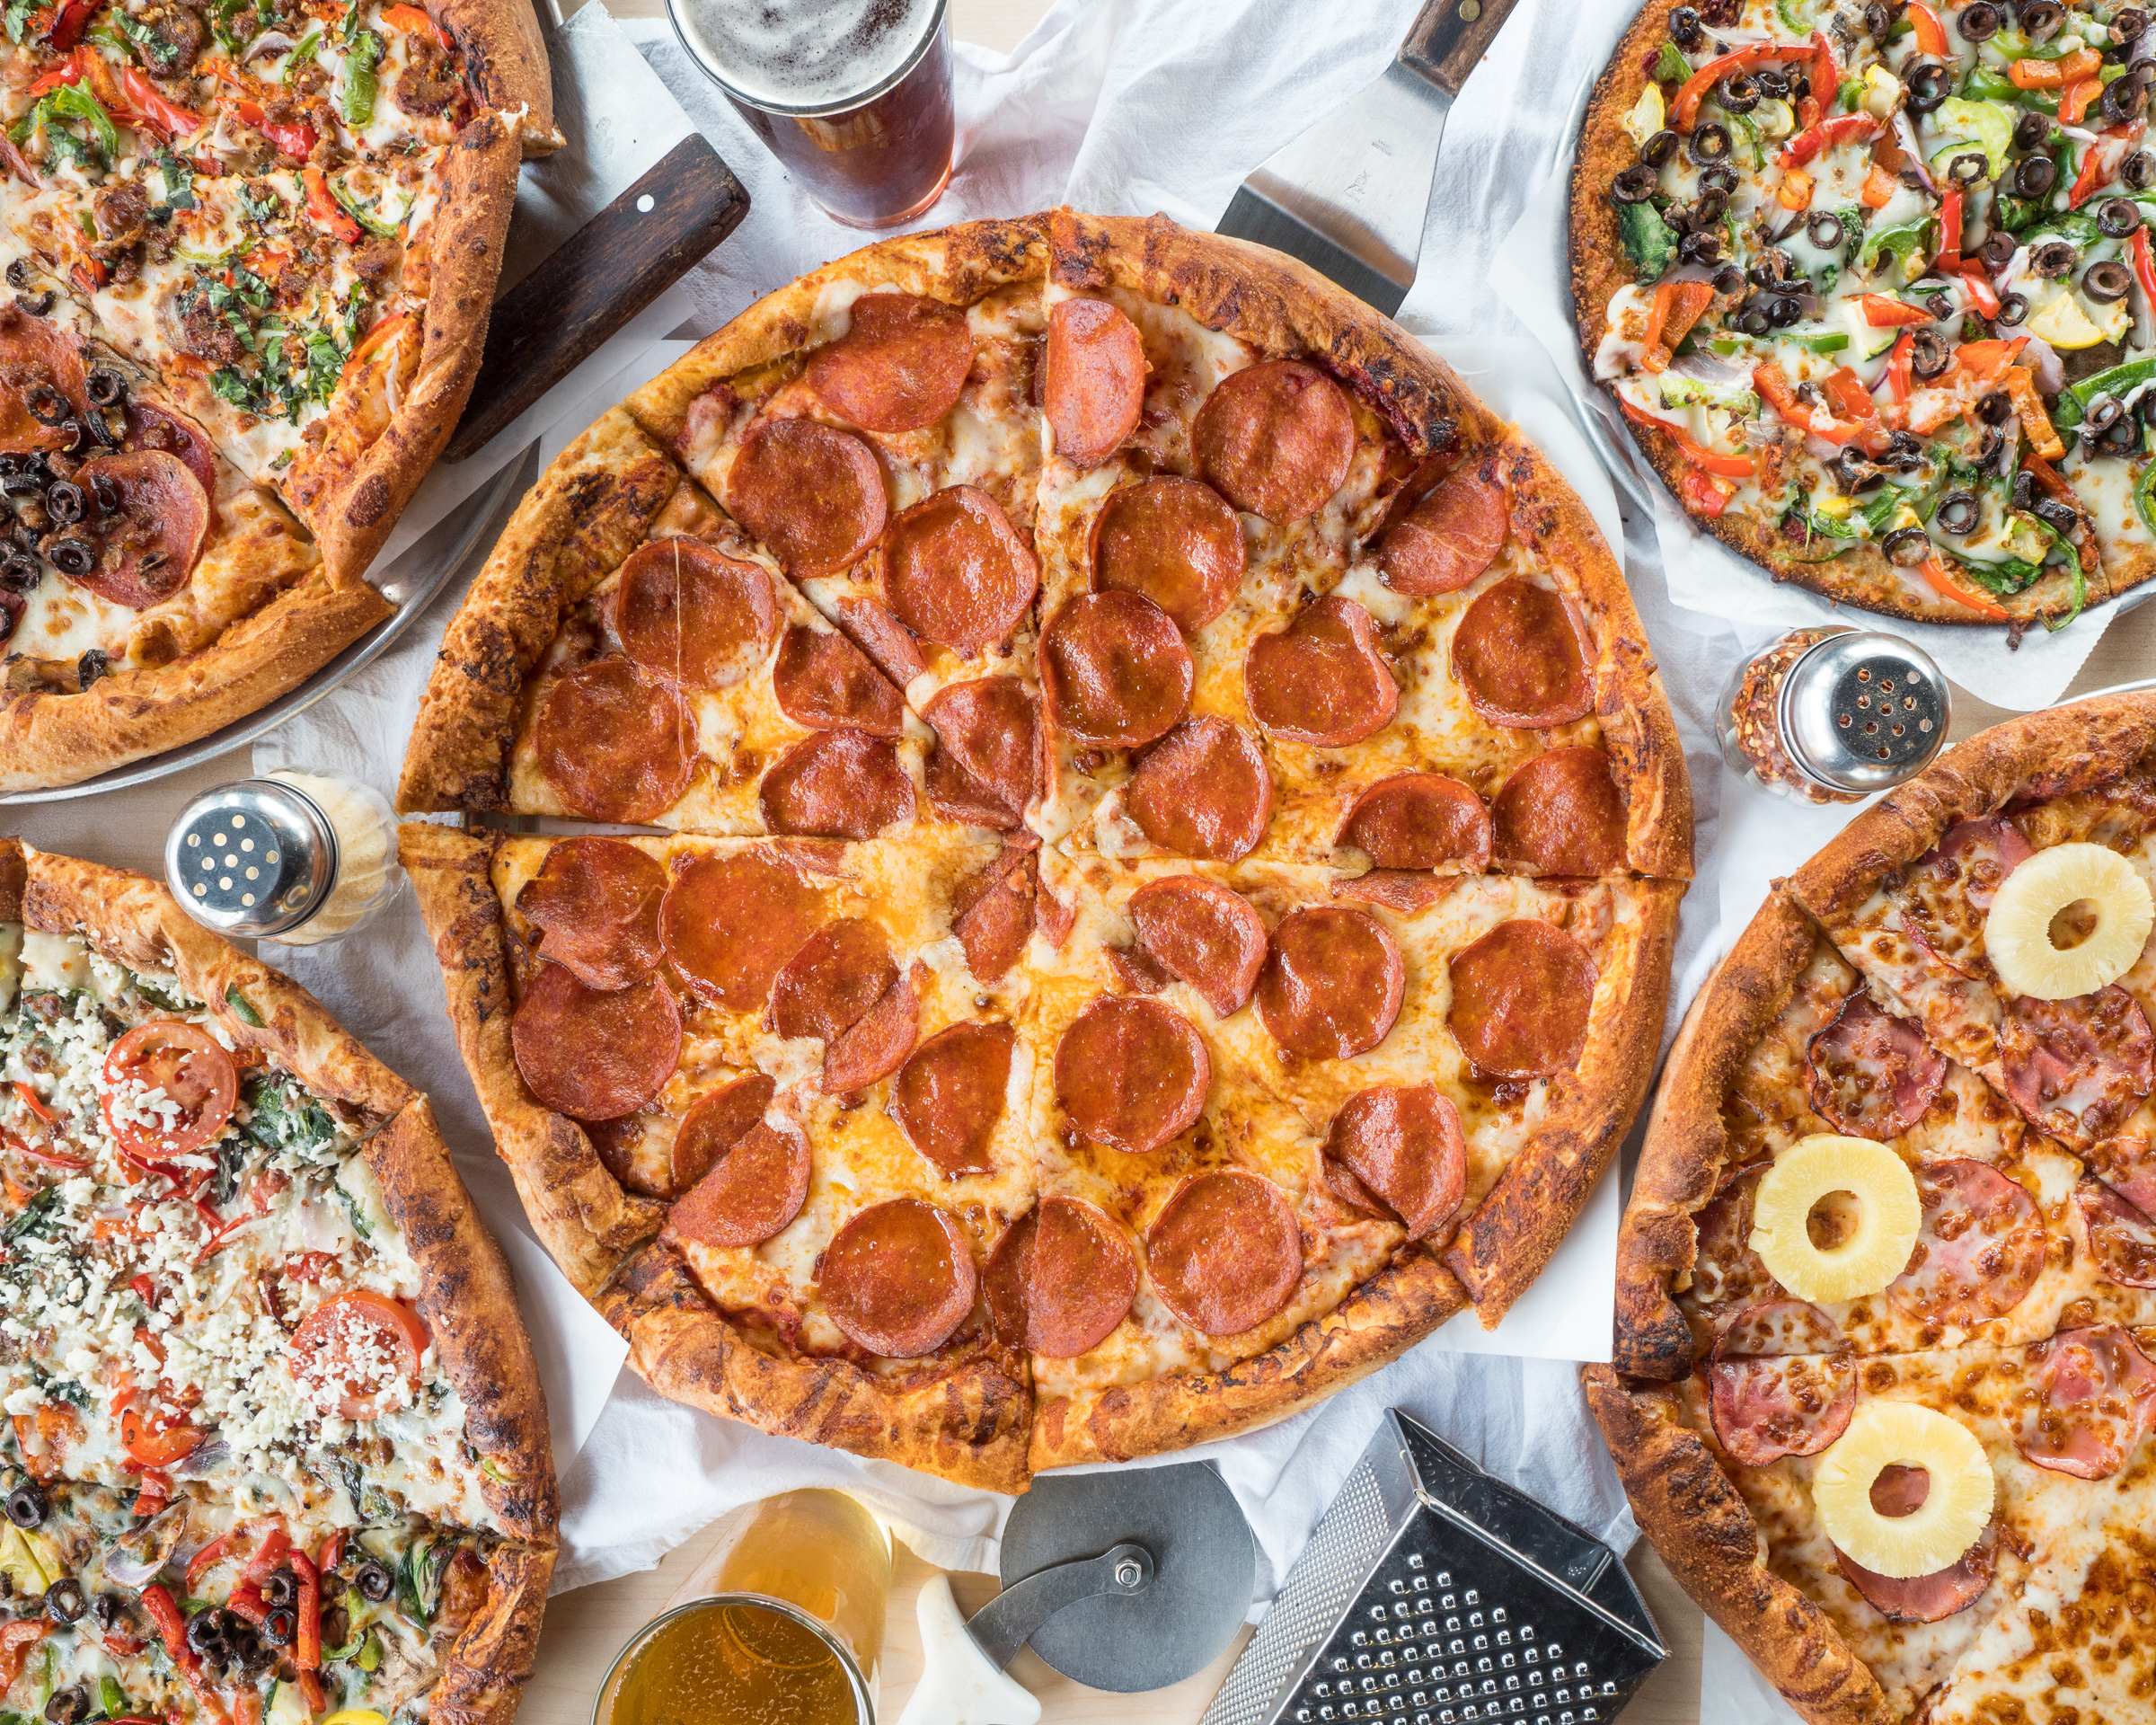 fare photo portland oregon food photographer photography jeremy pawlowski texas austin amarillo pizza pepperoni